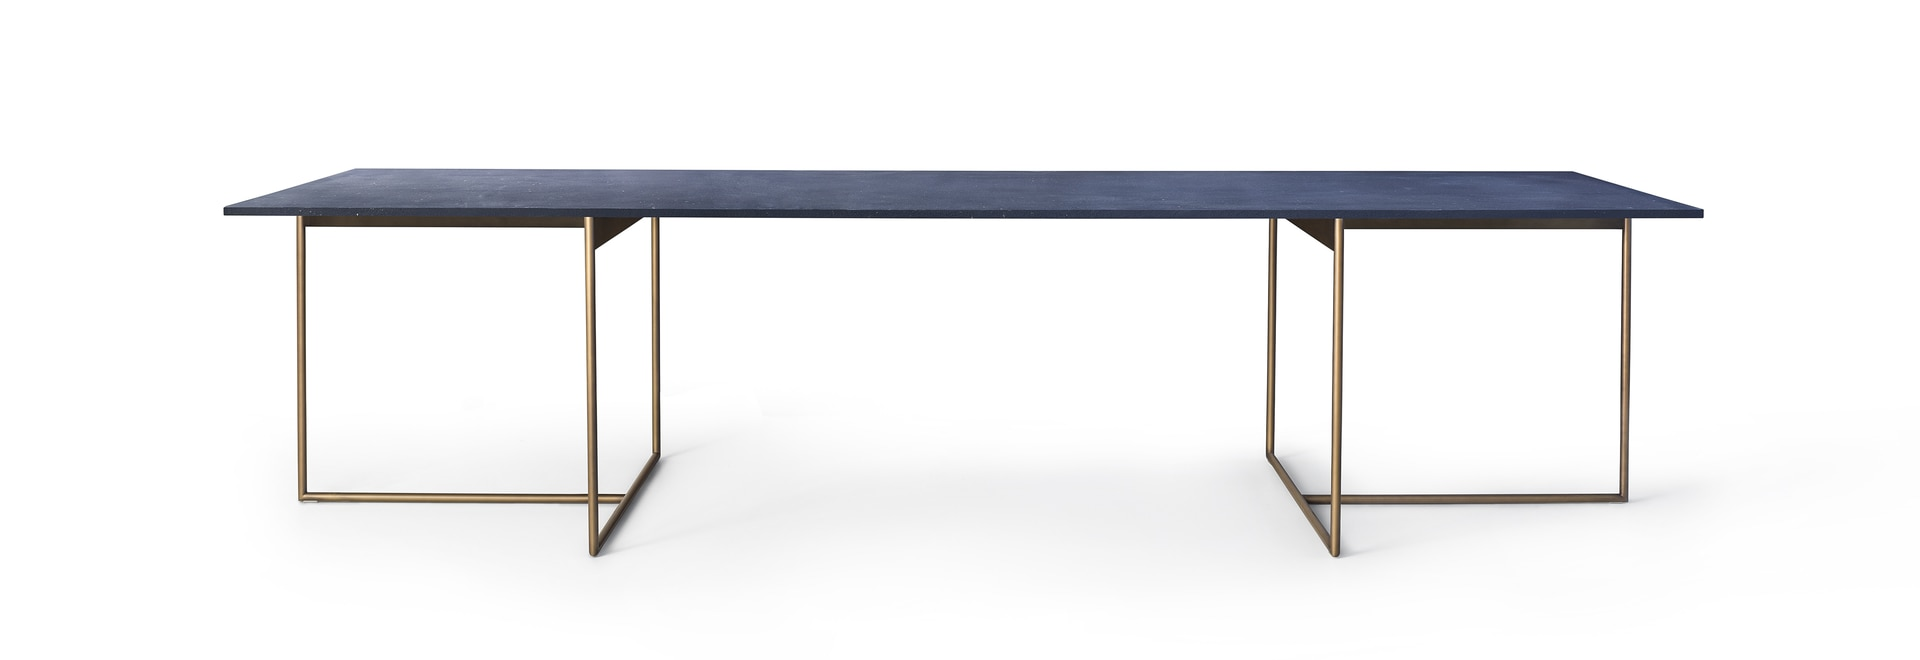 Alamo dining table - David Lopez Quincoces